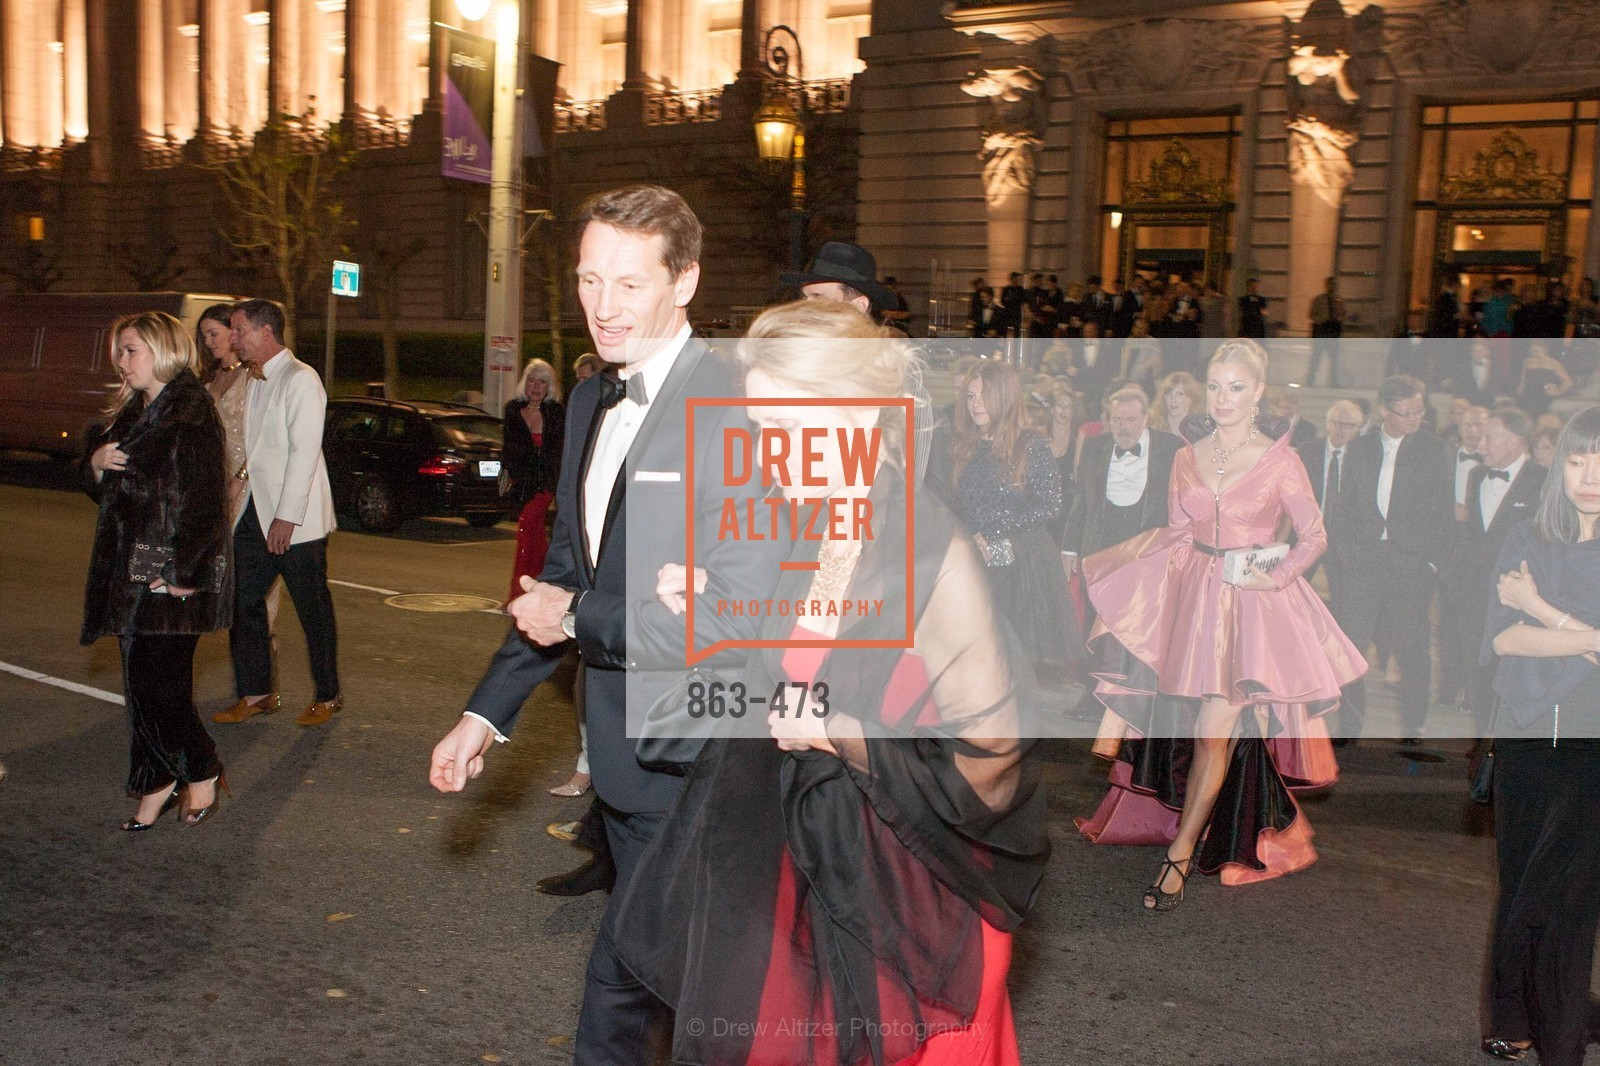 Extras, ENCORE! at San Francisco BALLET'S 2014 Season Opening Night Gala, January 22nd, 2014, Photo,Drew Altizer, Drew Altizer Photography, full-service agency, private events, San Francisco photographer, photographer california